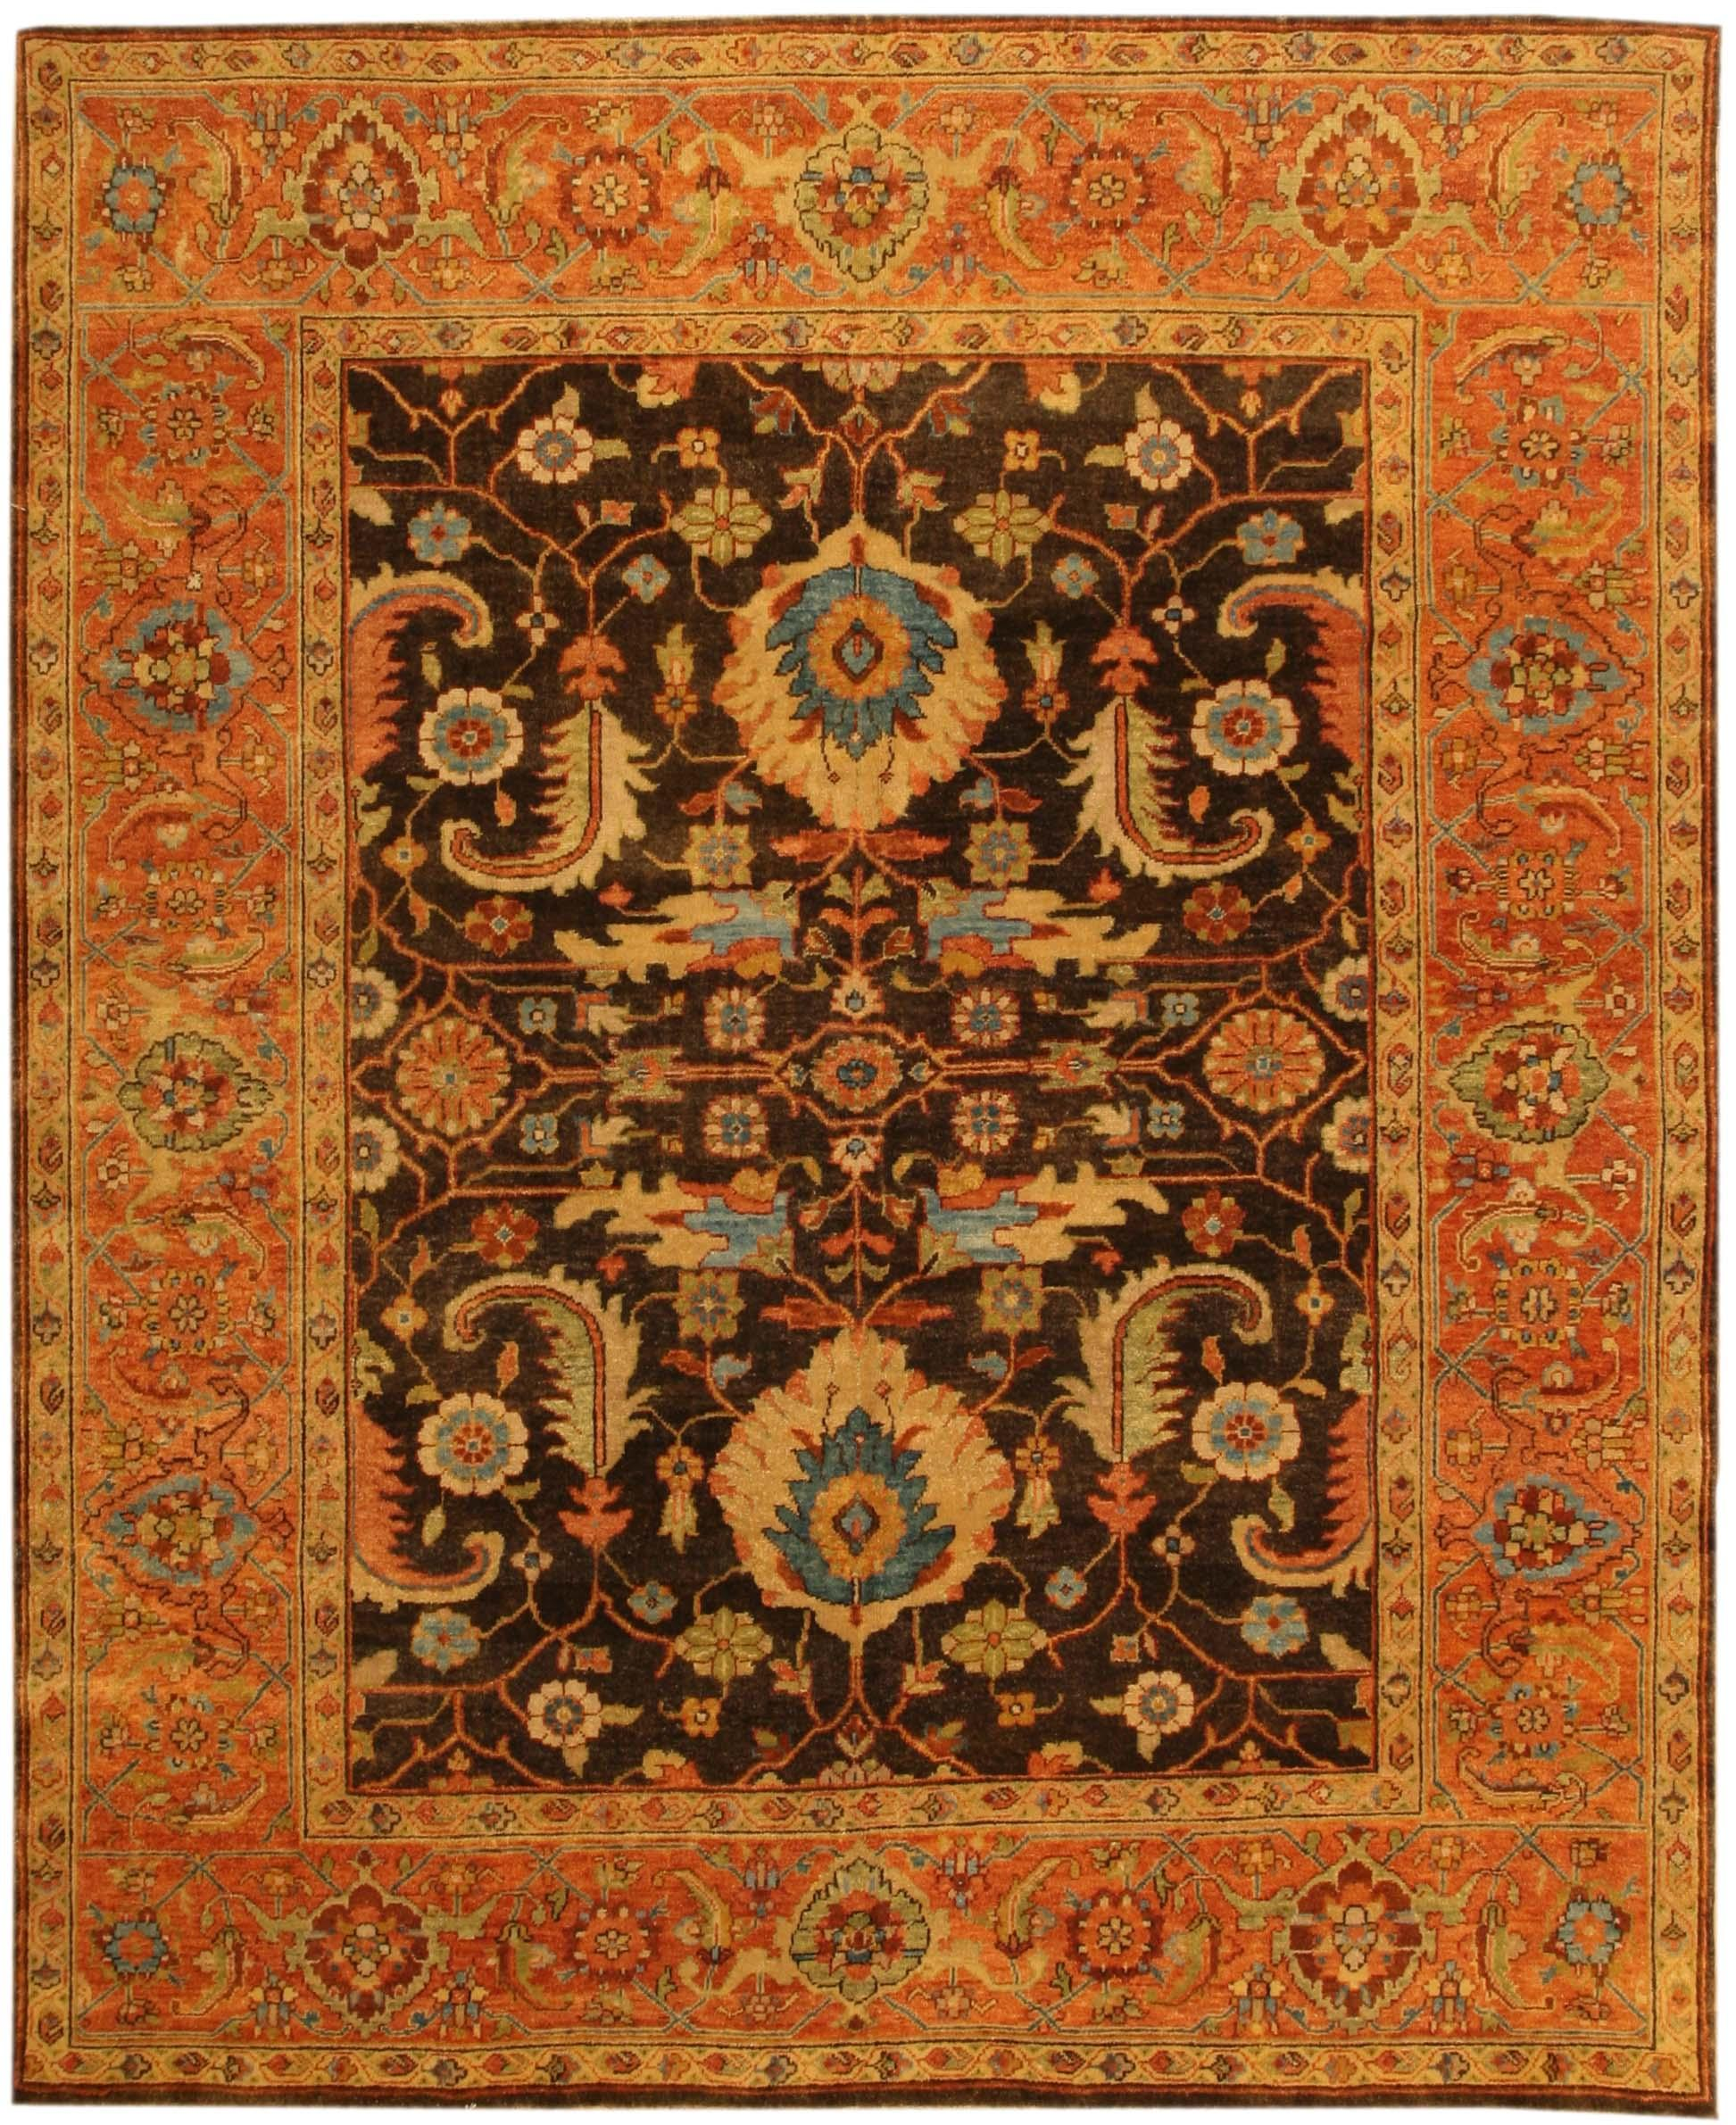 Mahal Design Indian Rug / Carpet 17871